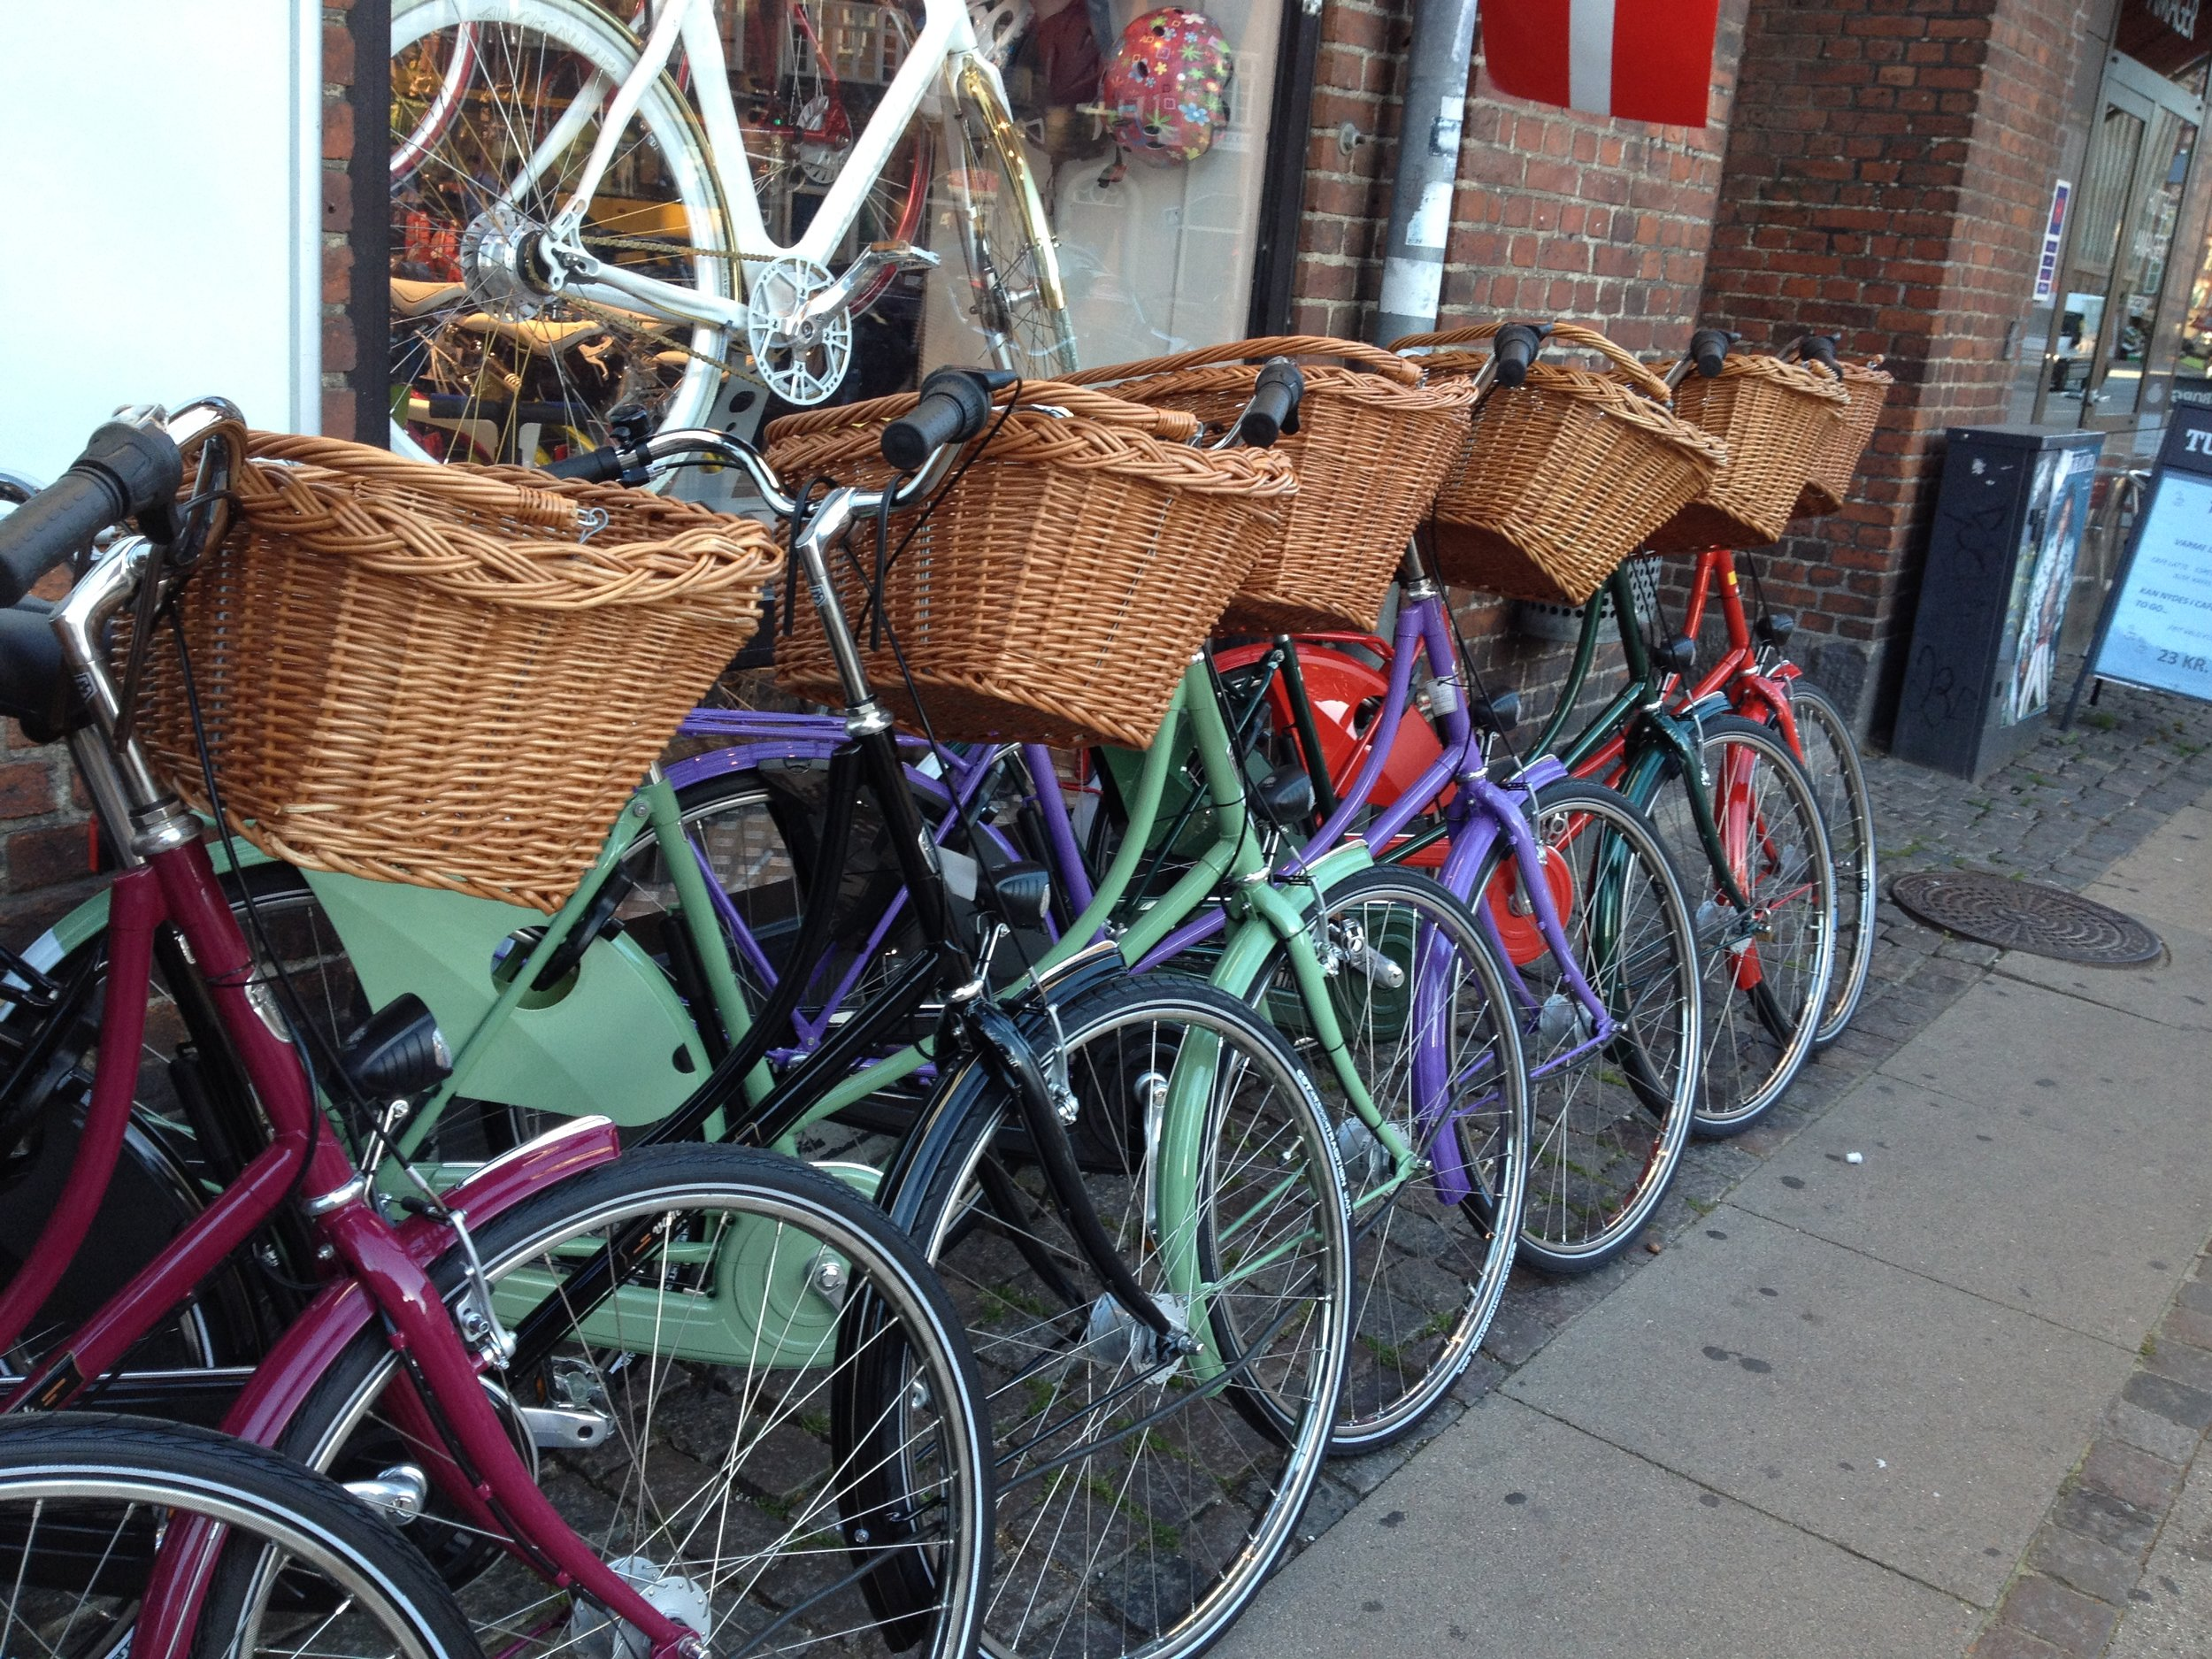 Row of colorful bicycles with baskets